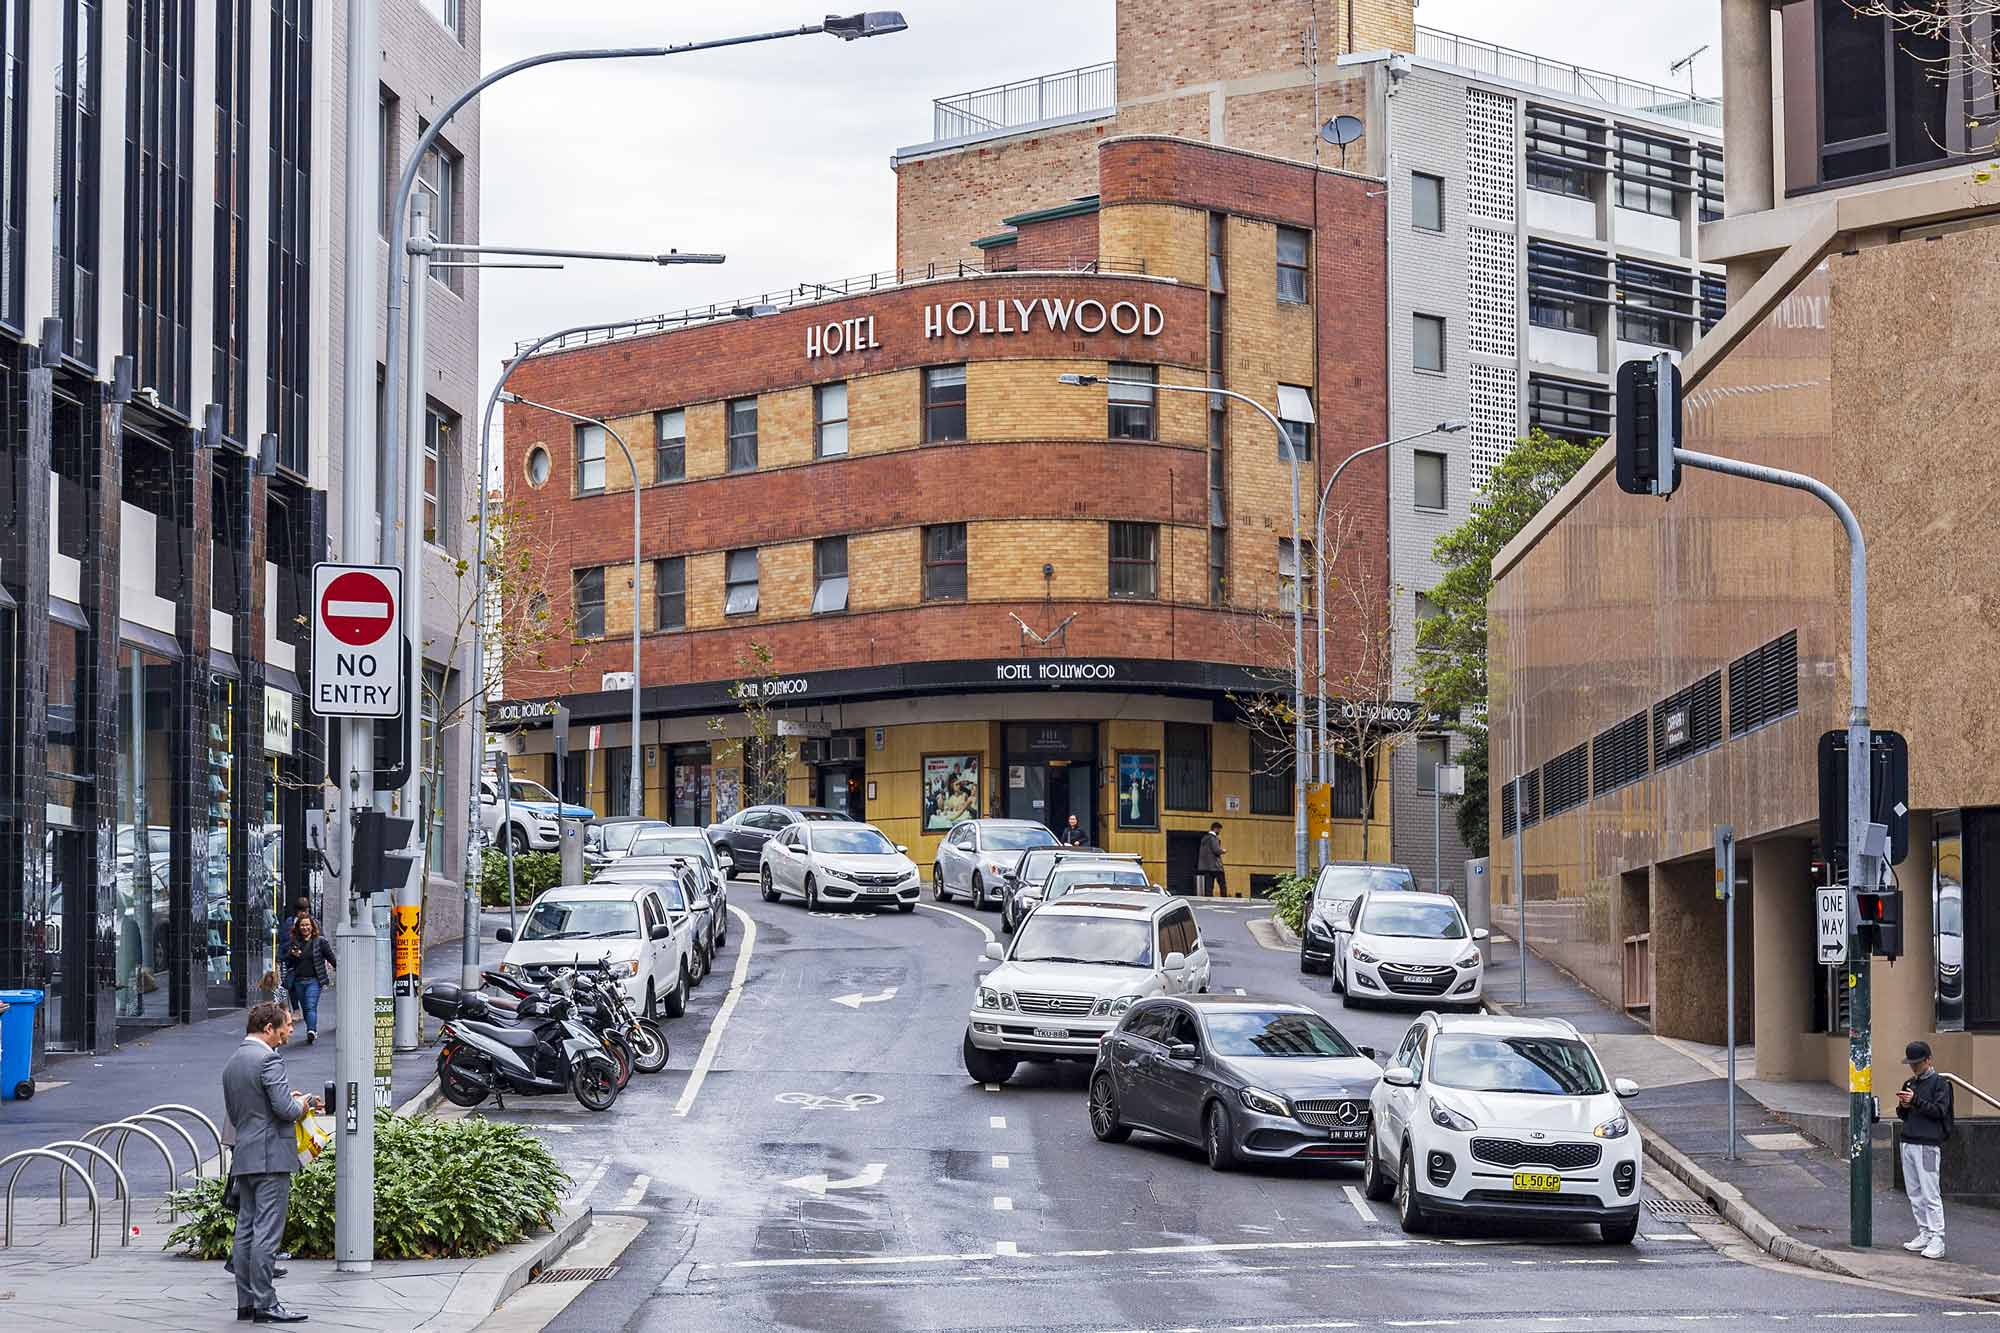 The Hotel Hollywood in Surry Hills. Photo: Wikicommons